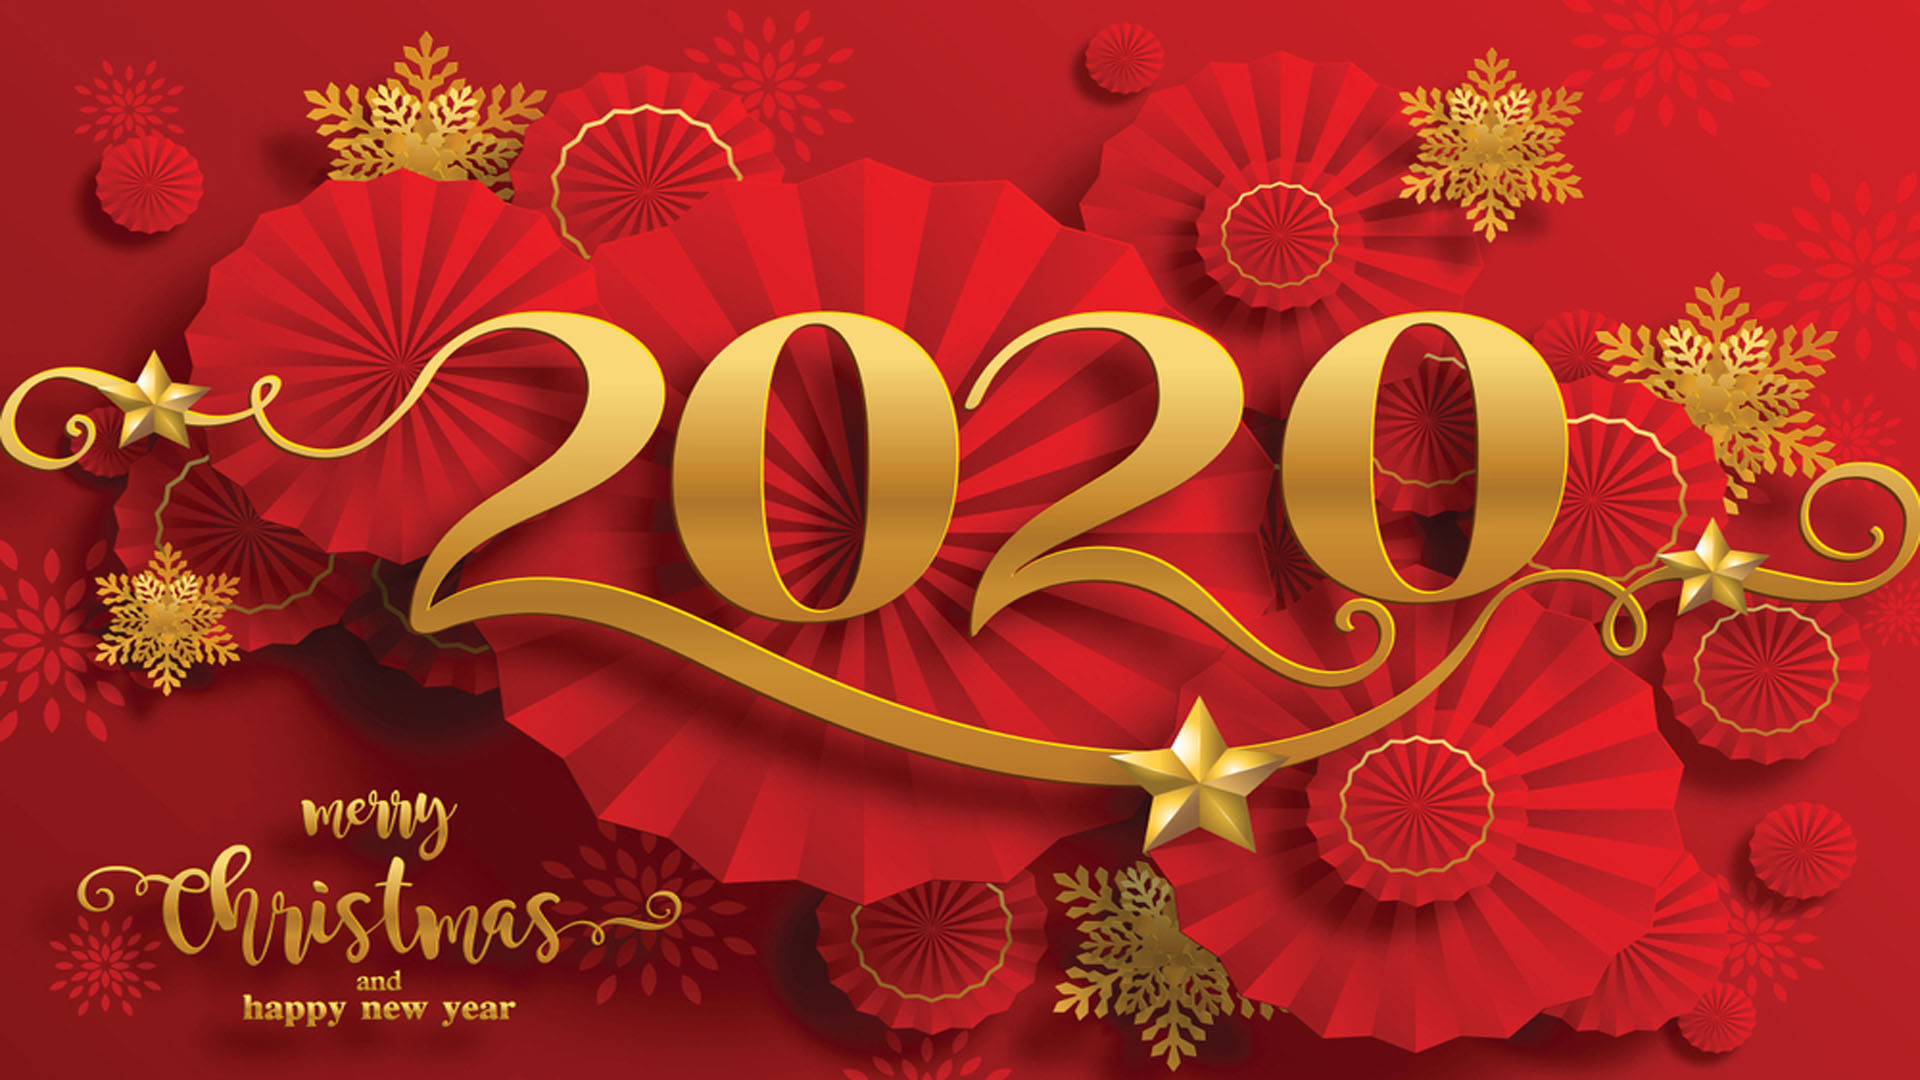 Chinese New Year 2020 Greeting Card For Mobile Phones Tablet And 1920x1080